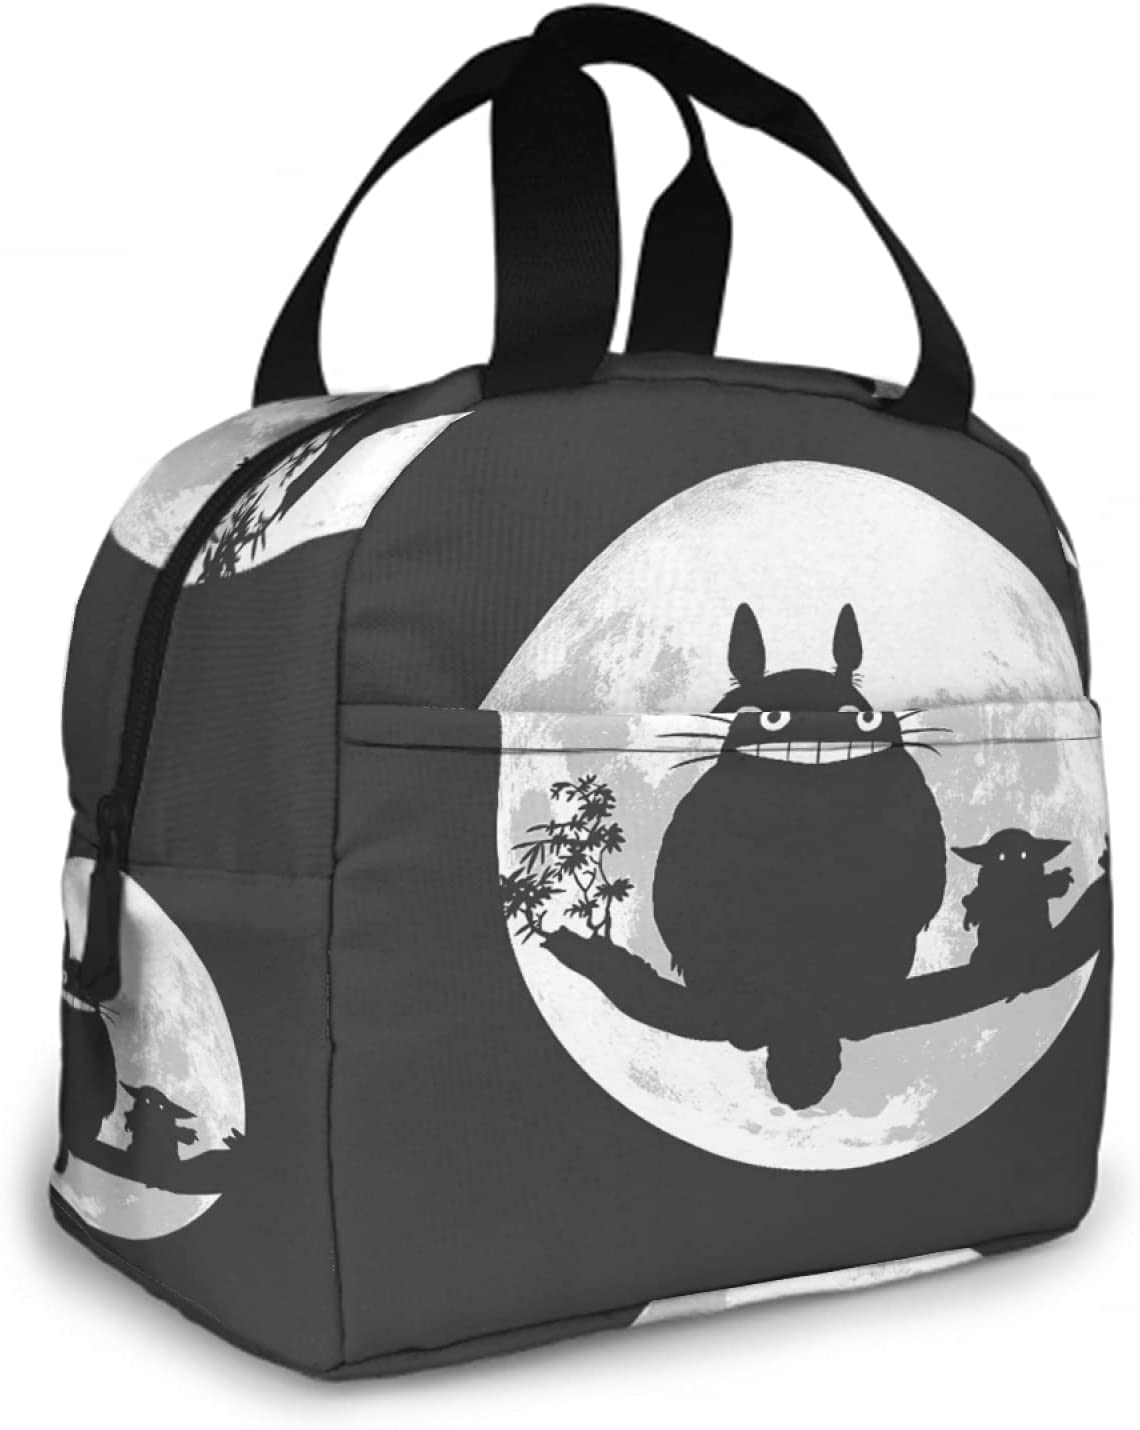 Yunlenb Japan's largest assortment My Neighbor Totoro Lunch Bag Women Portabl Max 73% OFF Proof For Men